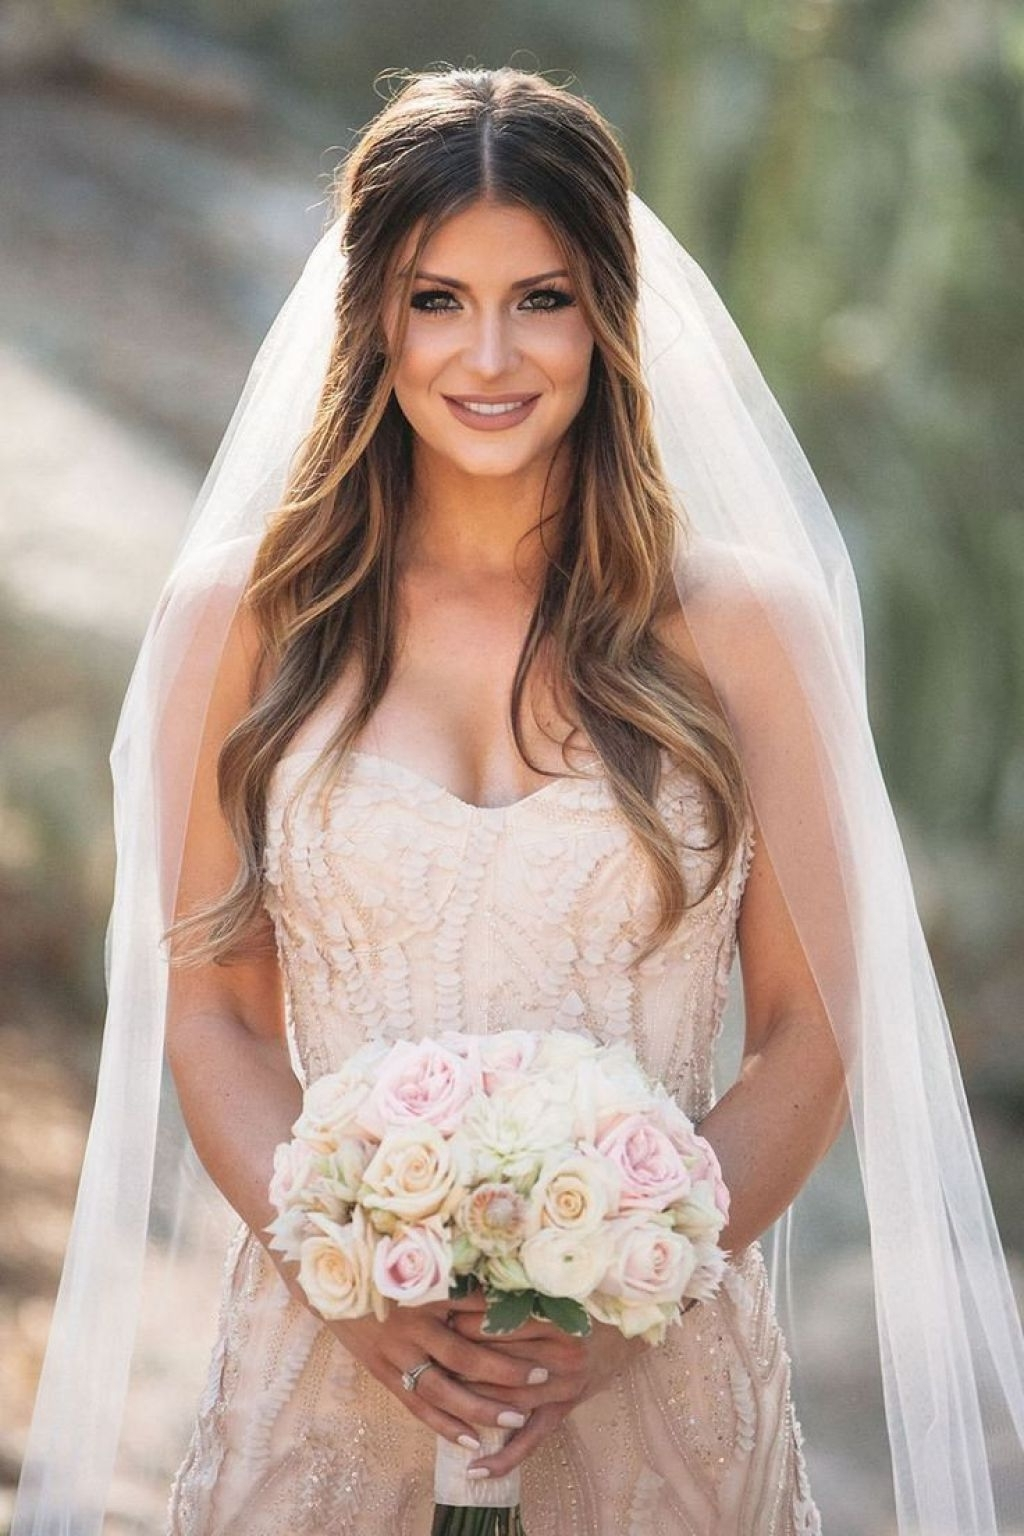 Most Popular Wedding Hairstyles With Long Hair Down Pertaining To √ 24+ Inspirational Wedding Hairstyles For Long Hair Down: Long (View 8 of 15)